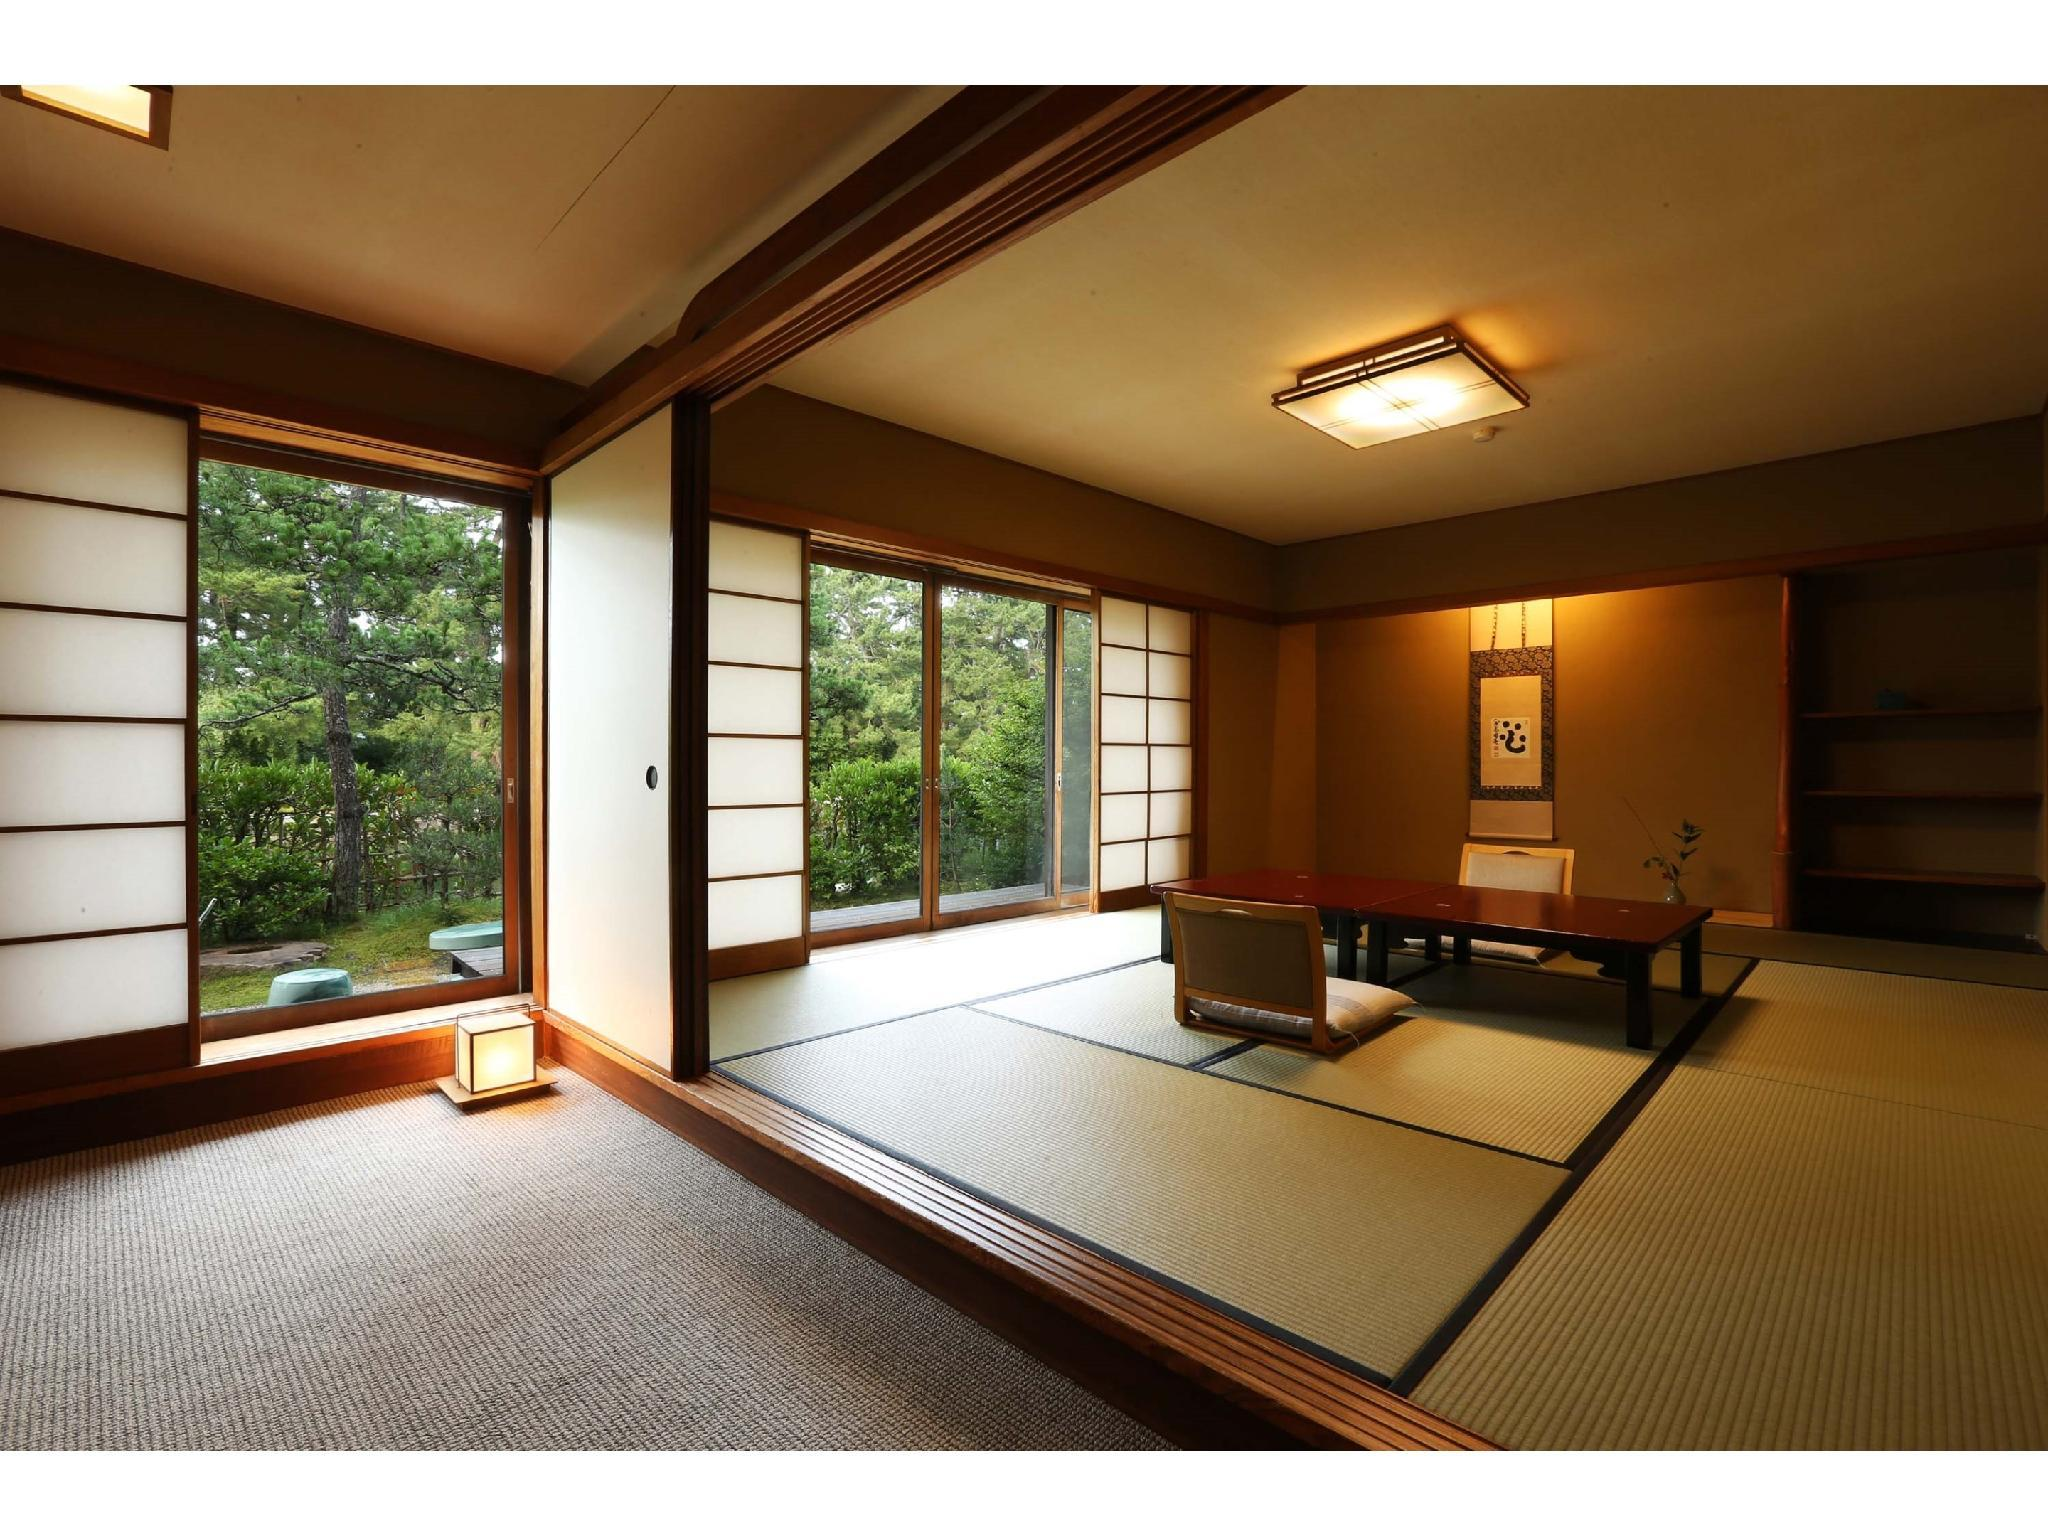 Japanese-style Room (Setsugekka no To Wing)